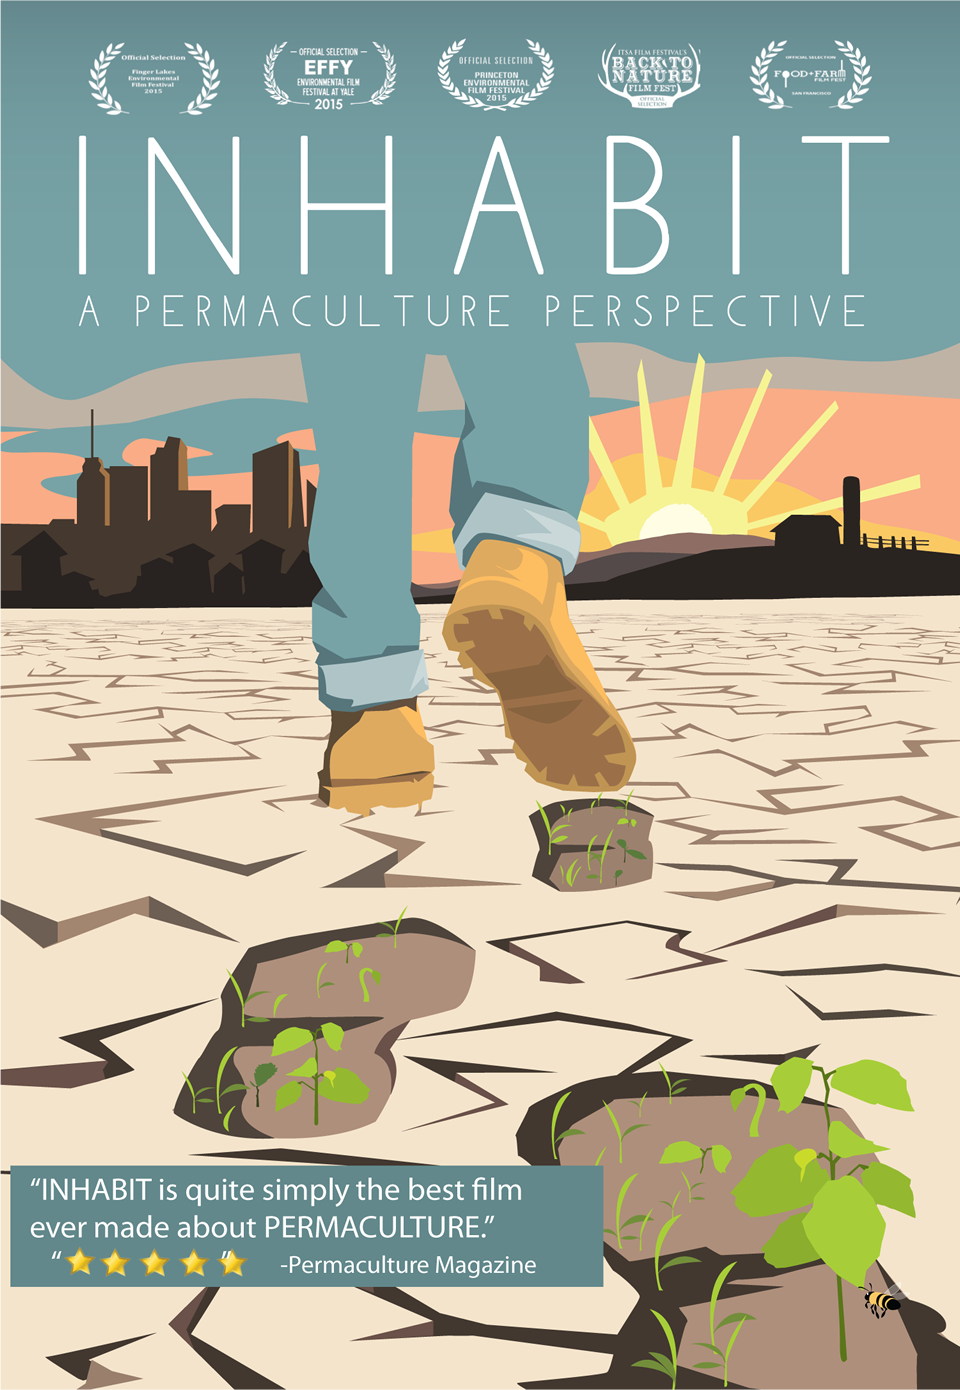 Inhabit: A Permaculture Perspective Film Screening (April 19)